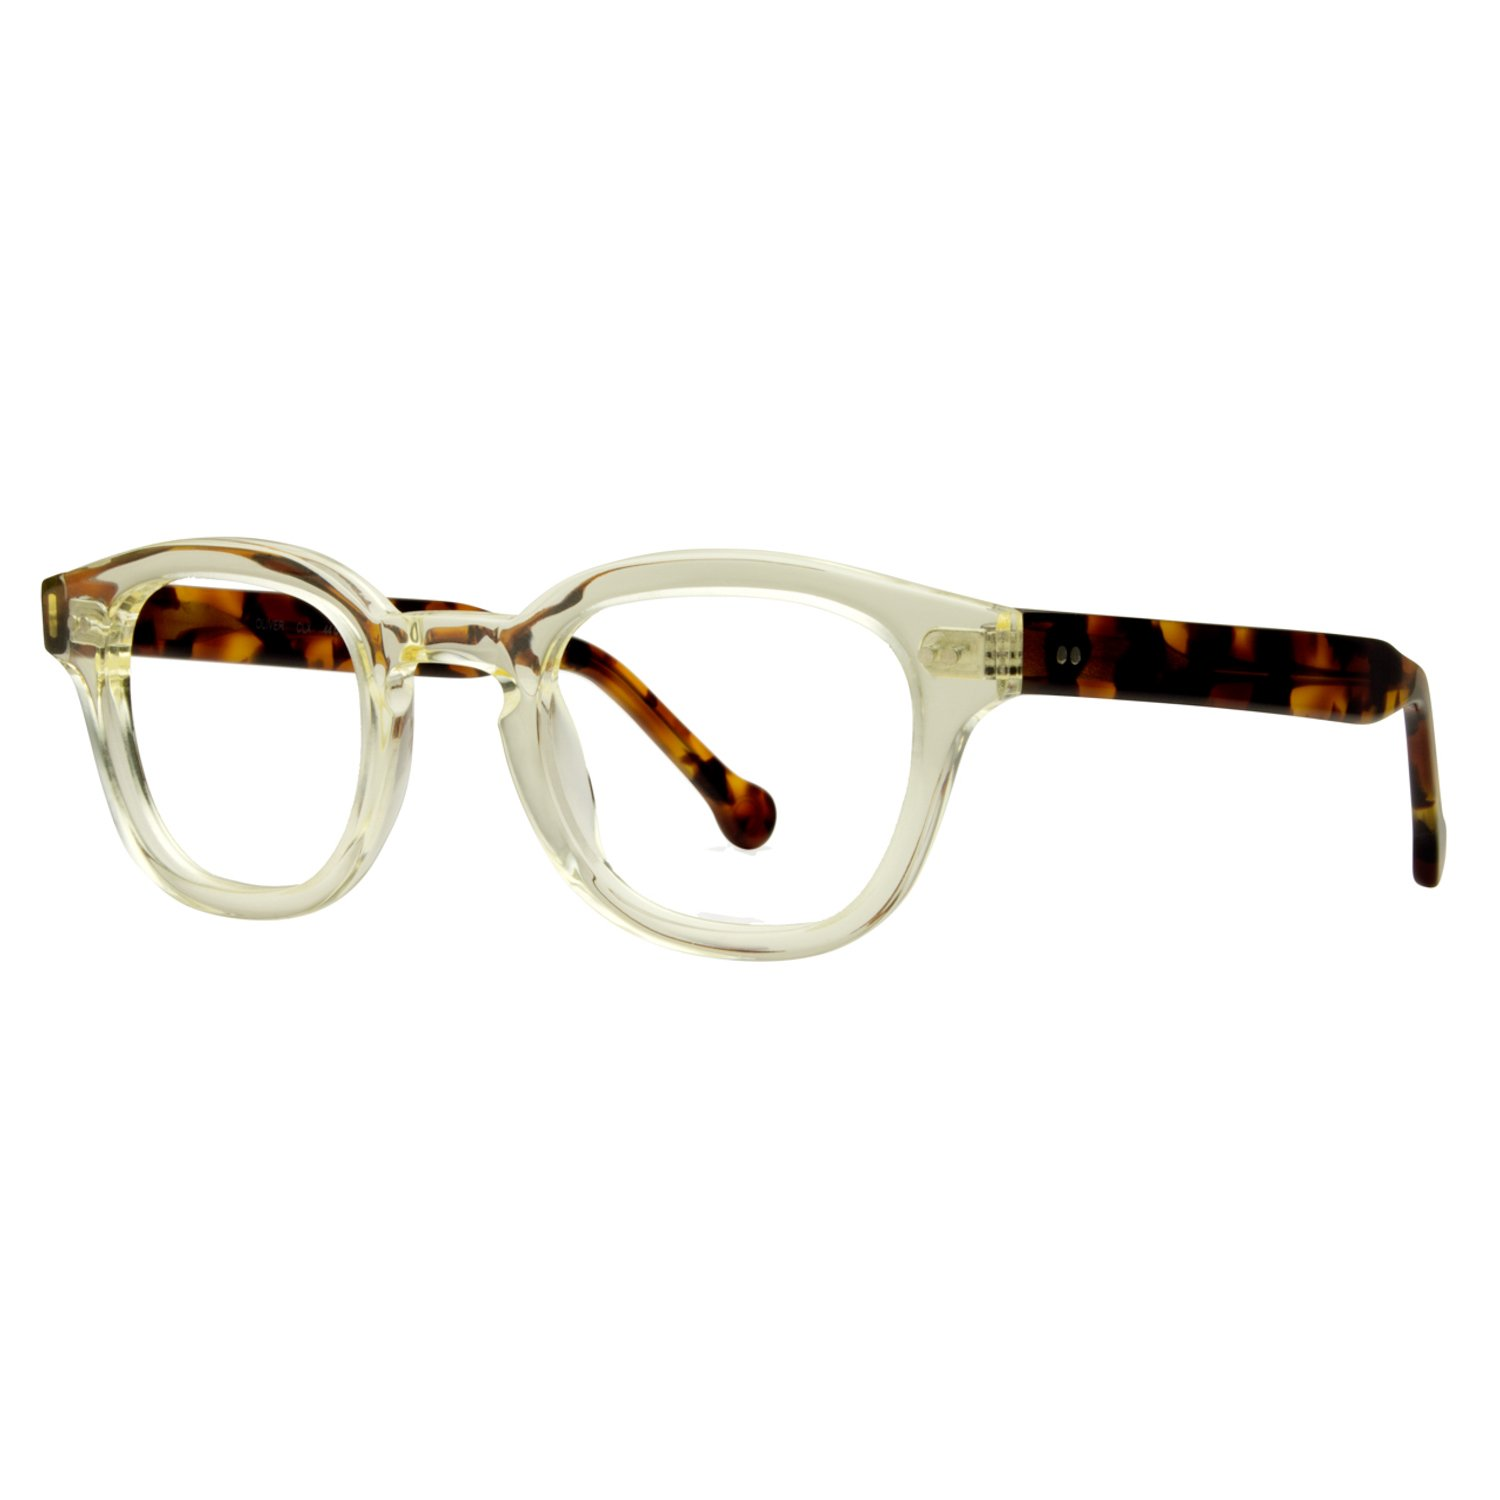 Photochromic Bifocal Readers, Transition from Clear Indoors to Sunglass Outdoors eyeOs Model 'OLIVER' Retro, Anti Glare